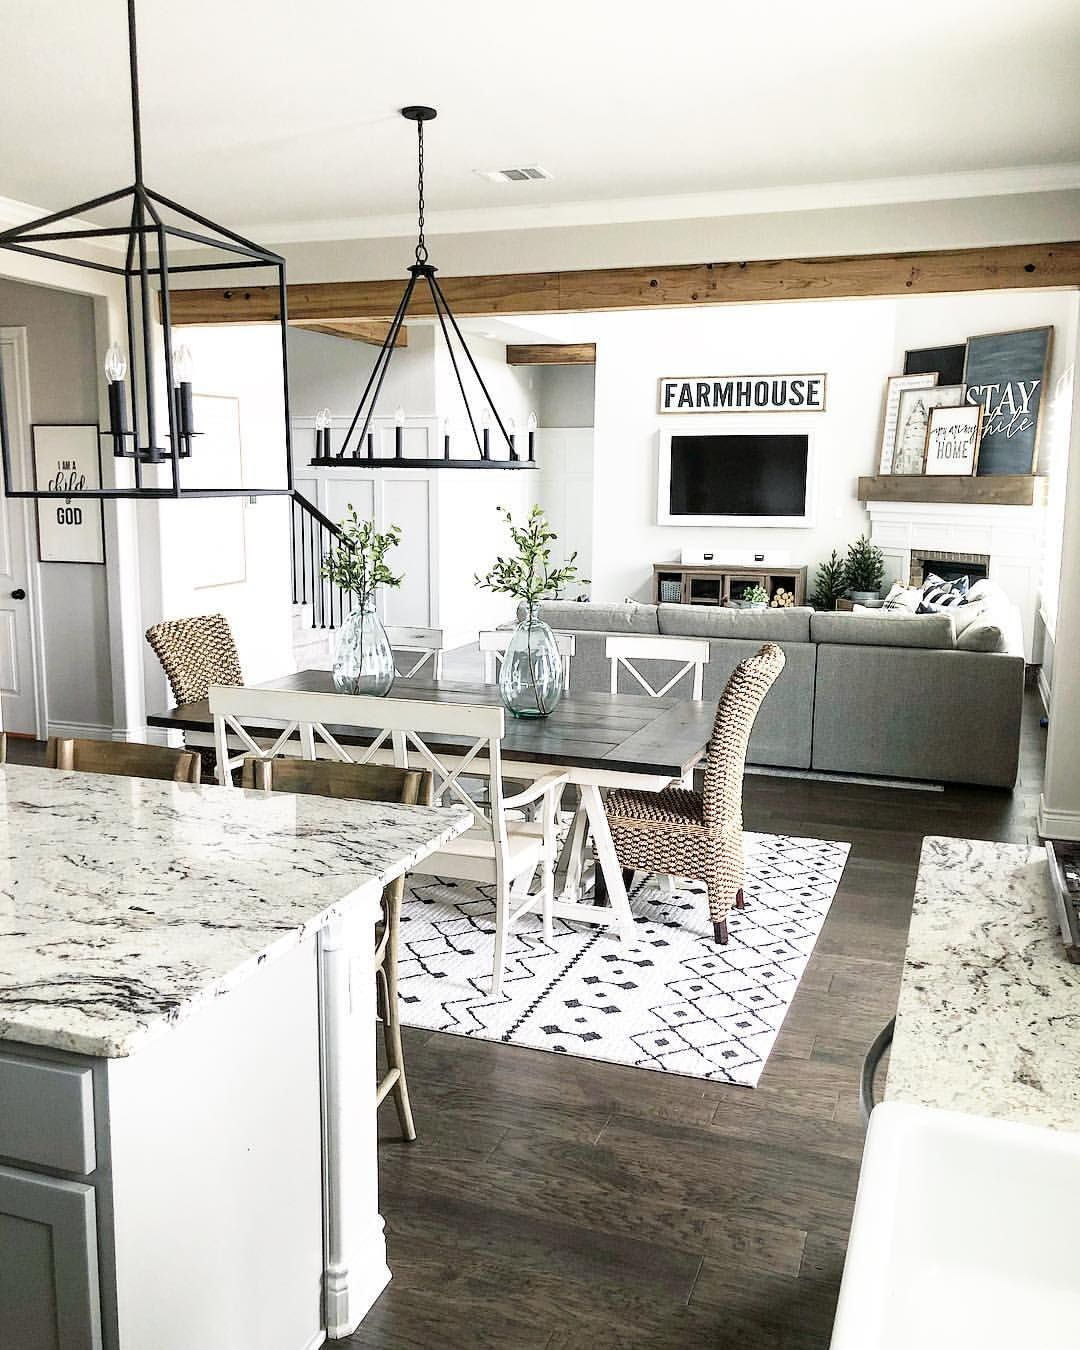 Farmhouse style open layout with kitchen, dining room and living ...